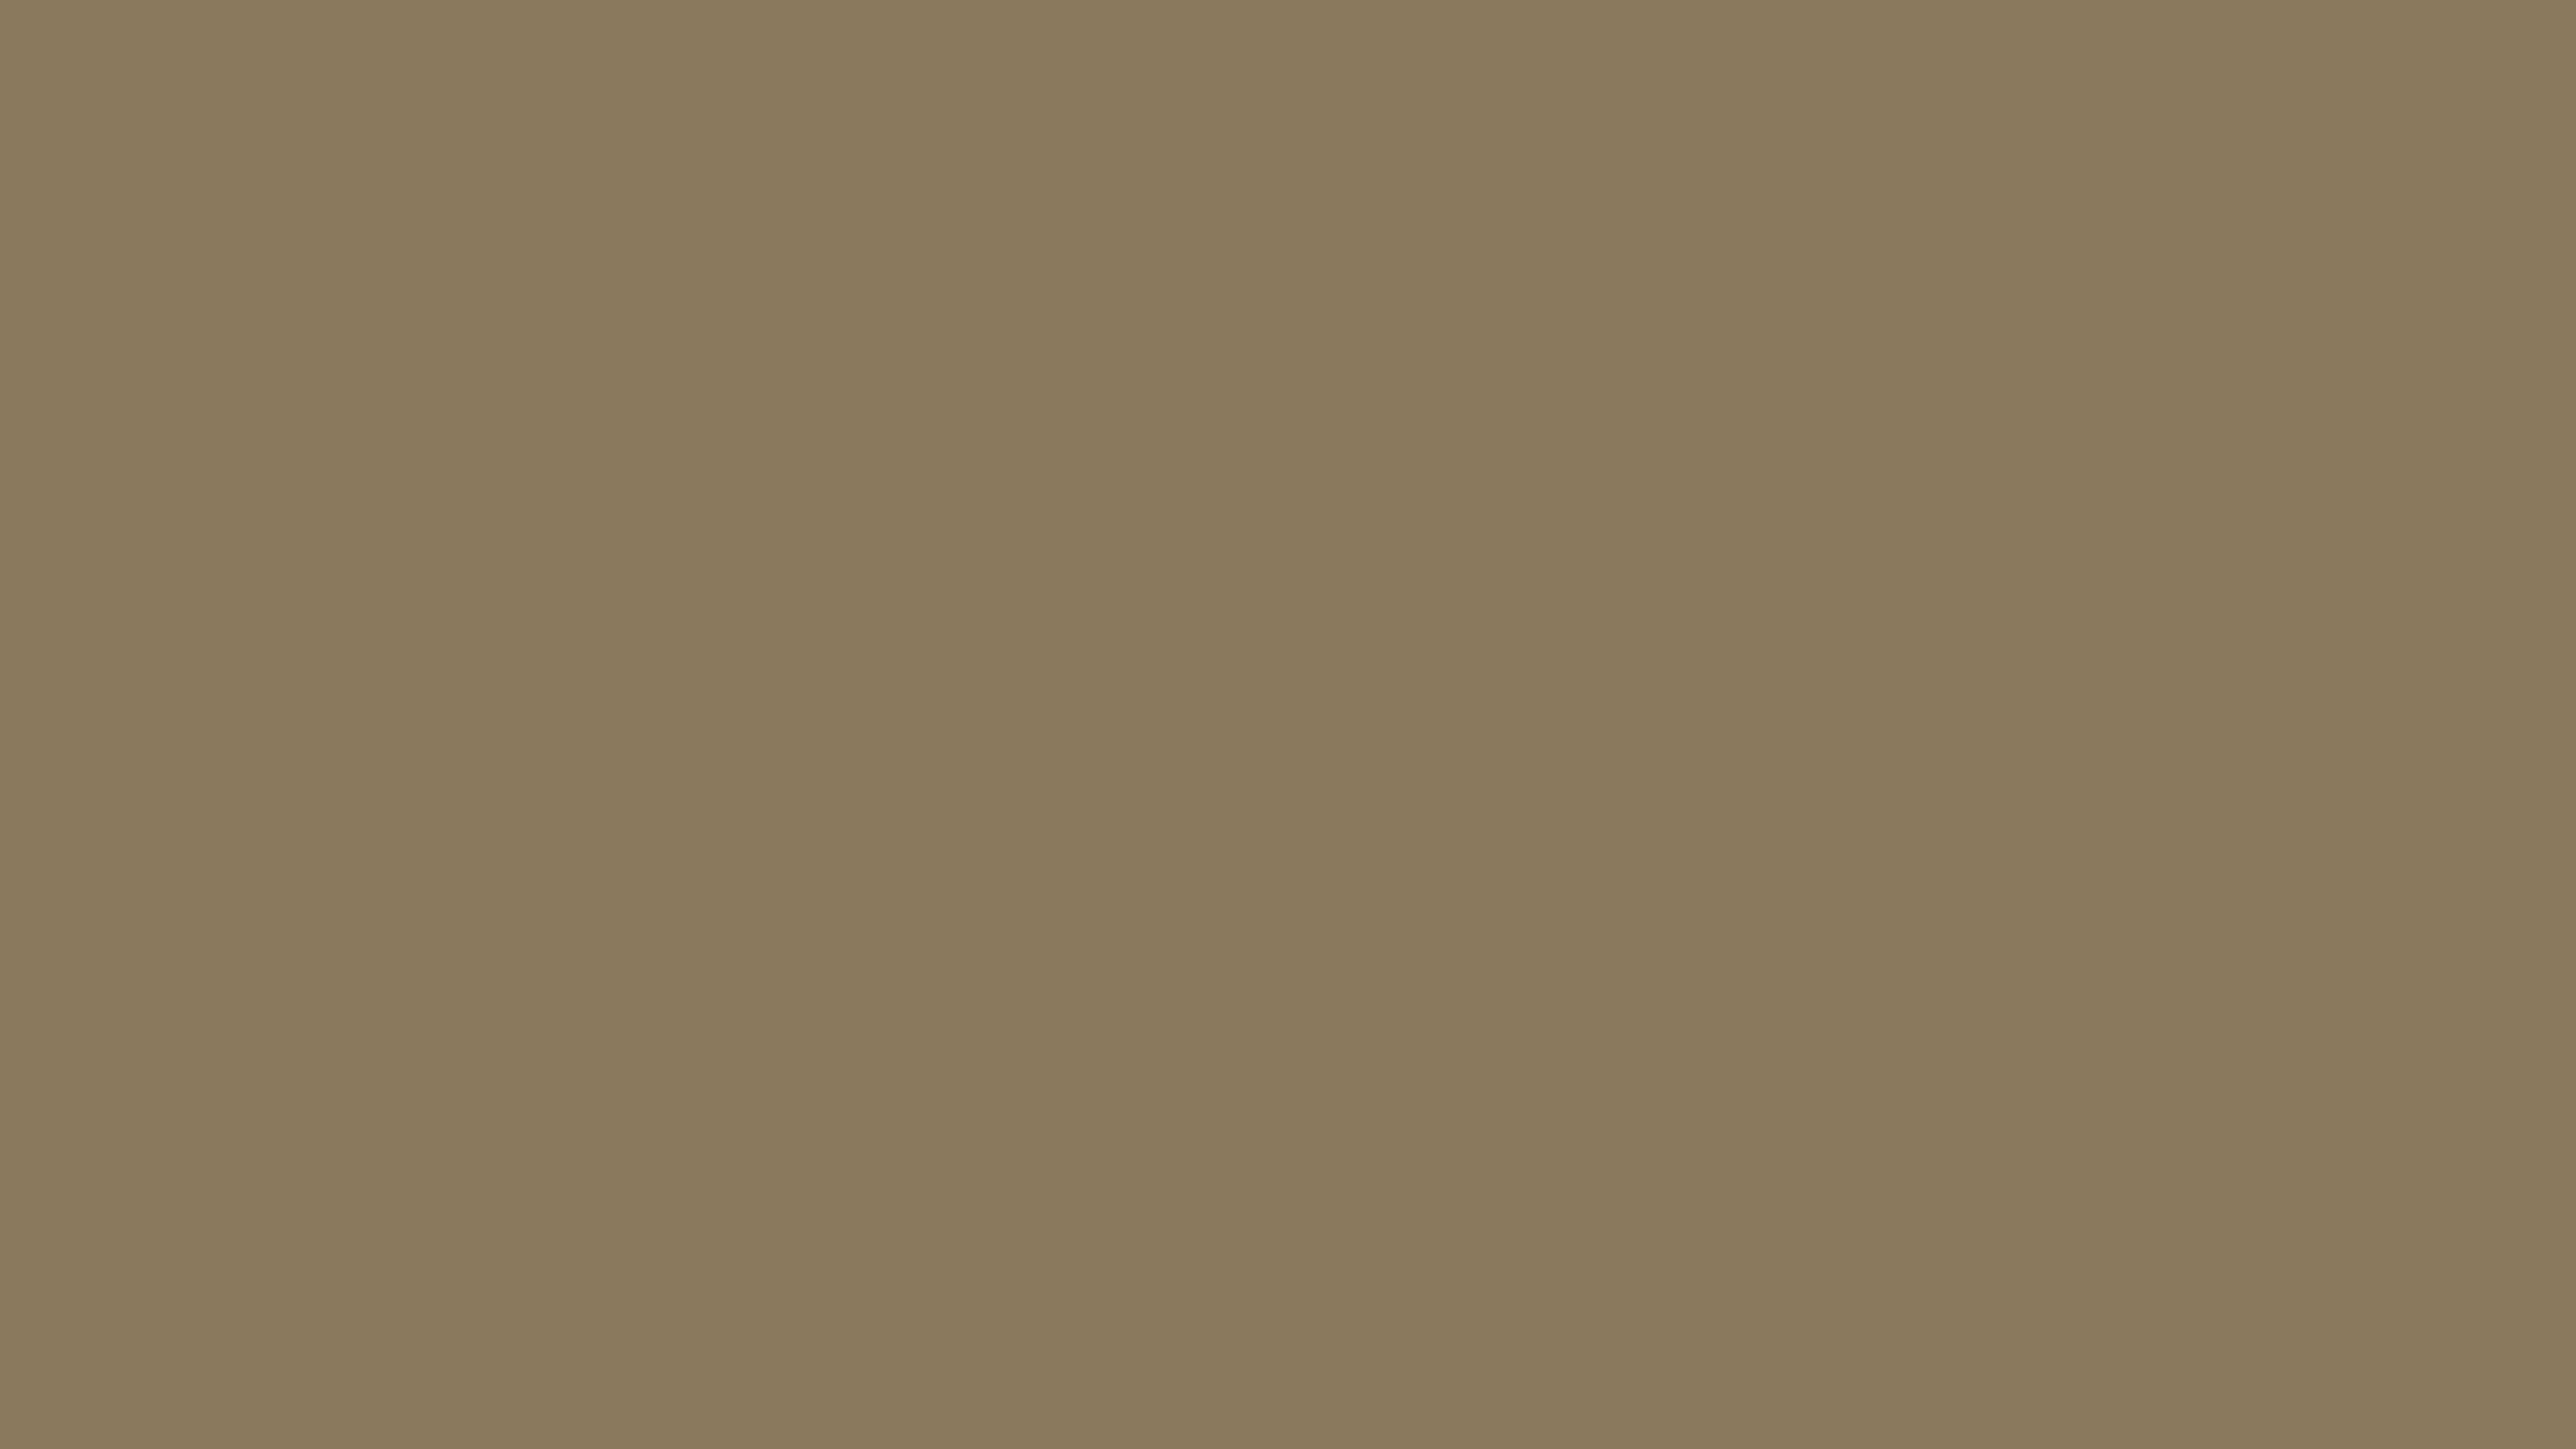 4096x2304 Shadow Solid Color Background